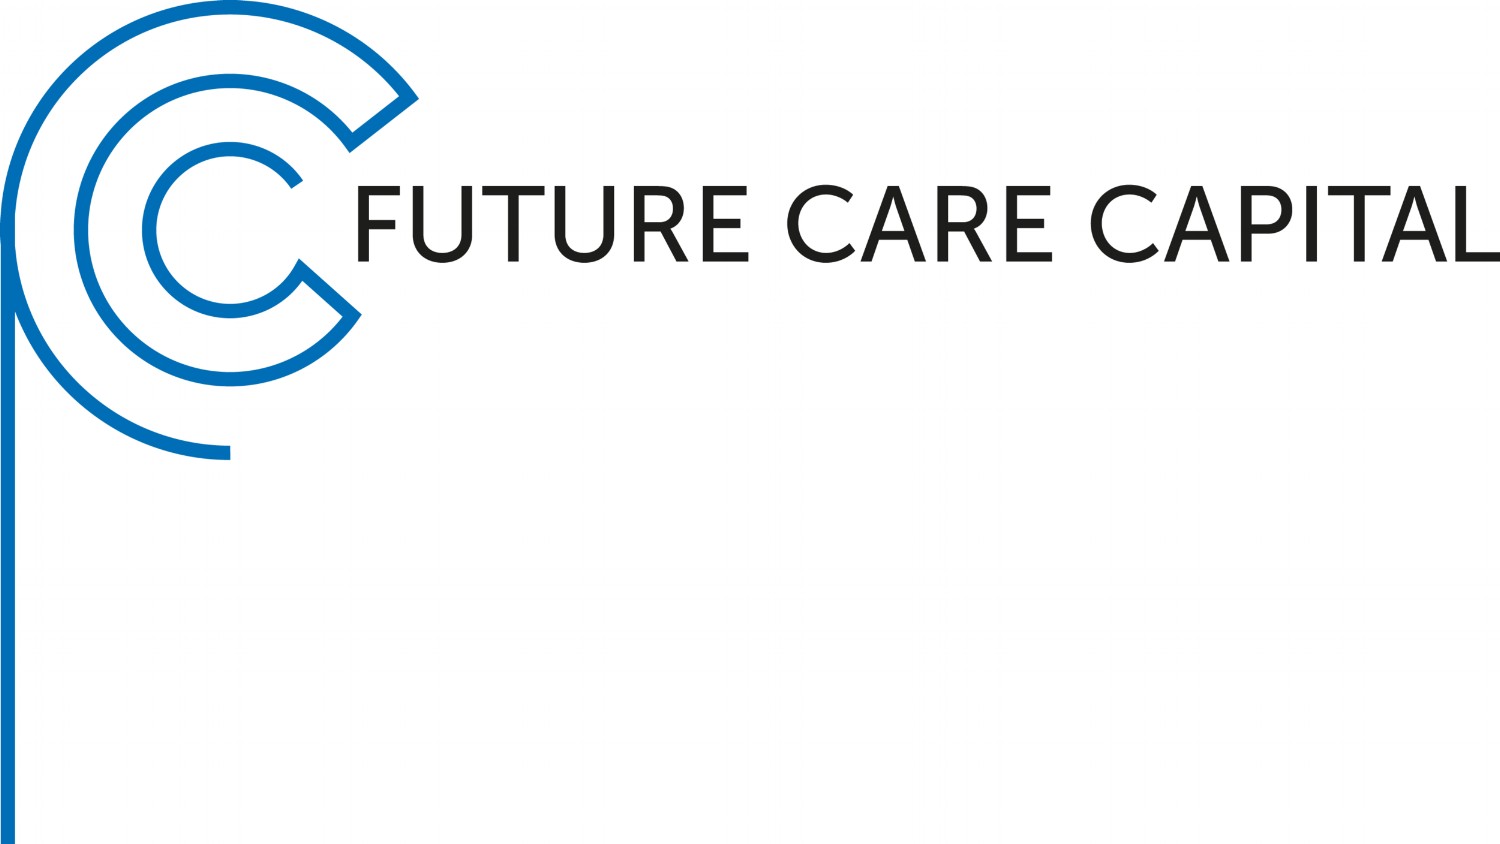 A charity committed to engaging, educating and involving all generations in the development and delivery of unified health and care provision